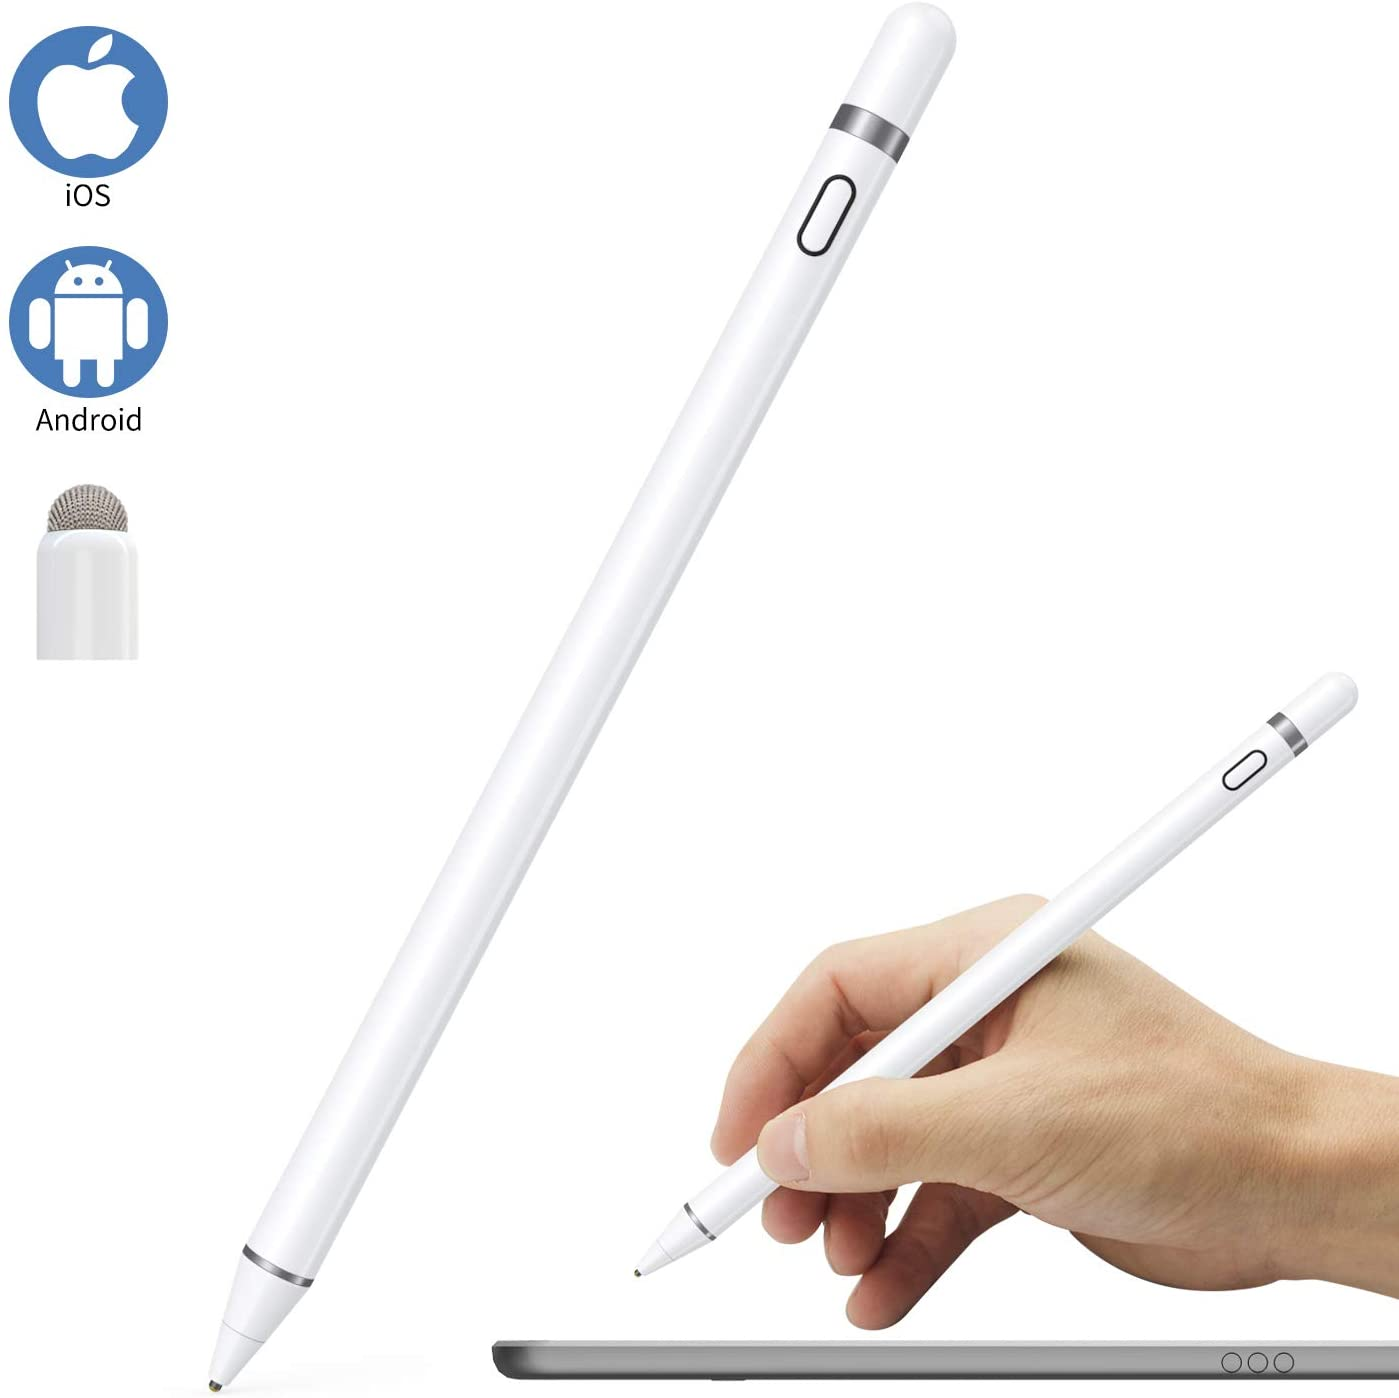 Stylus Pen Compatible for iOS and Android Touch Screens, Pen for iPad with Dual Touch Function,Rechargeable Stylus for Apple iPad/iPad Pro/Air/Mini/iPhone,Samsung/Android Smart Phone&Tablet Writing